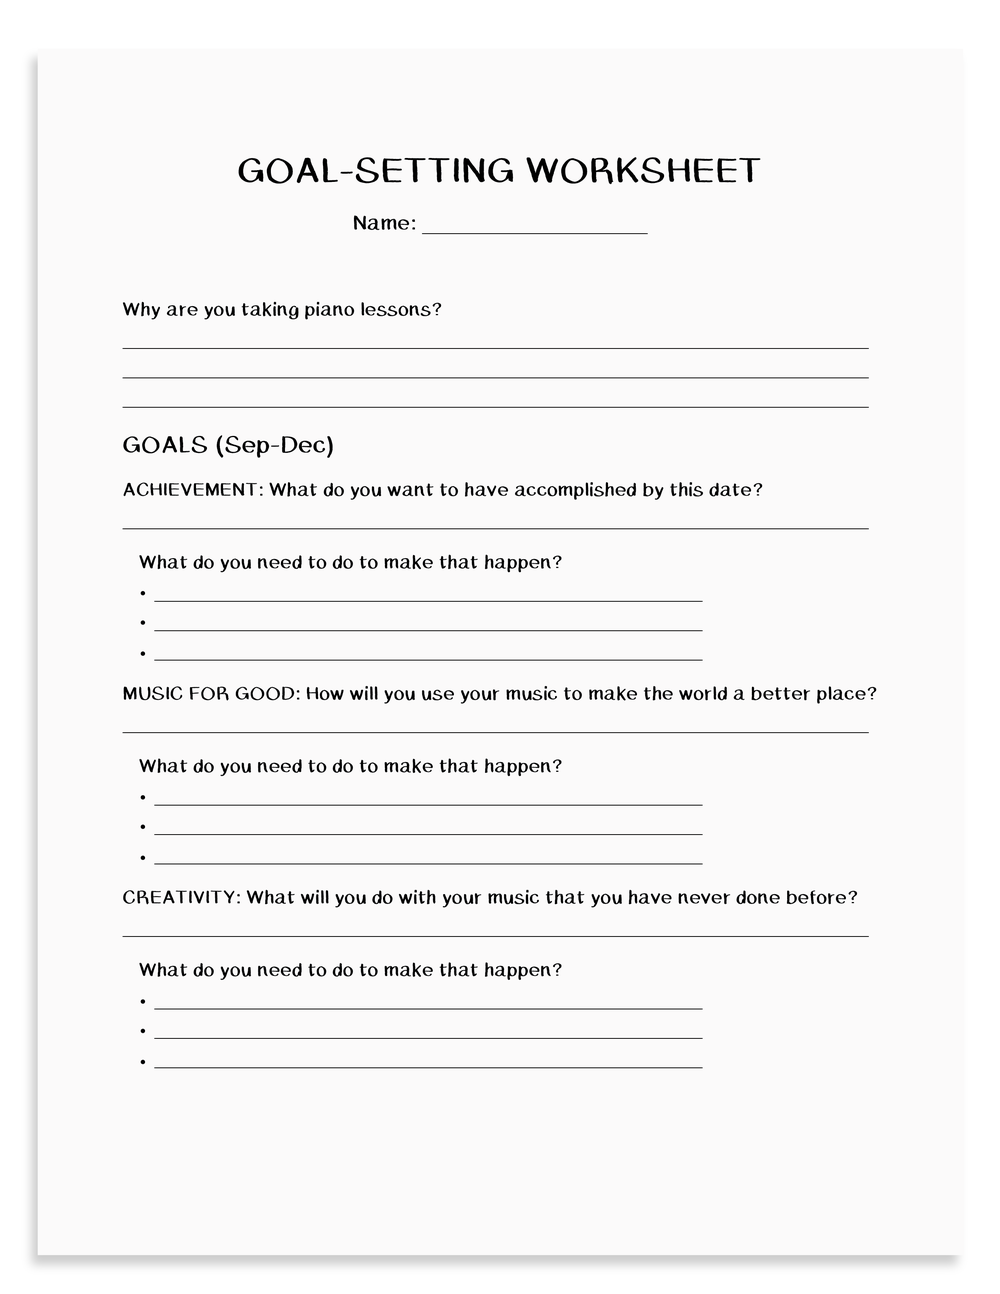 Goal Setting Worksheet-20.png